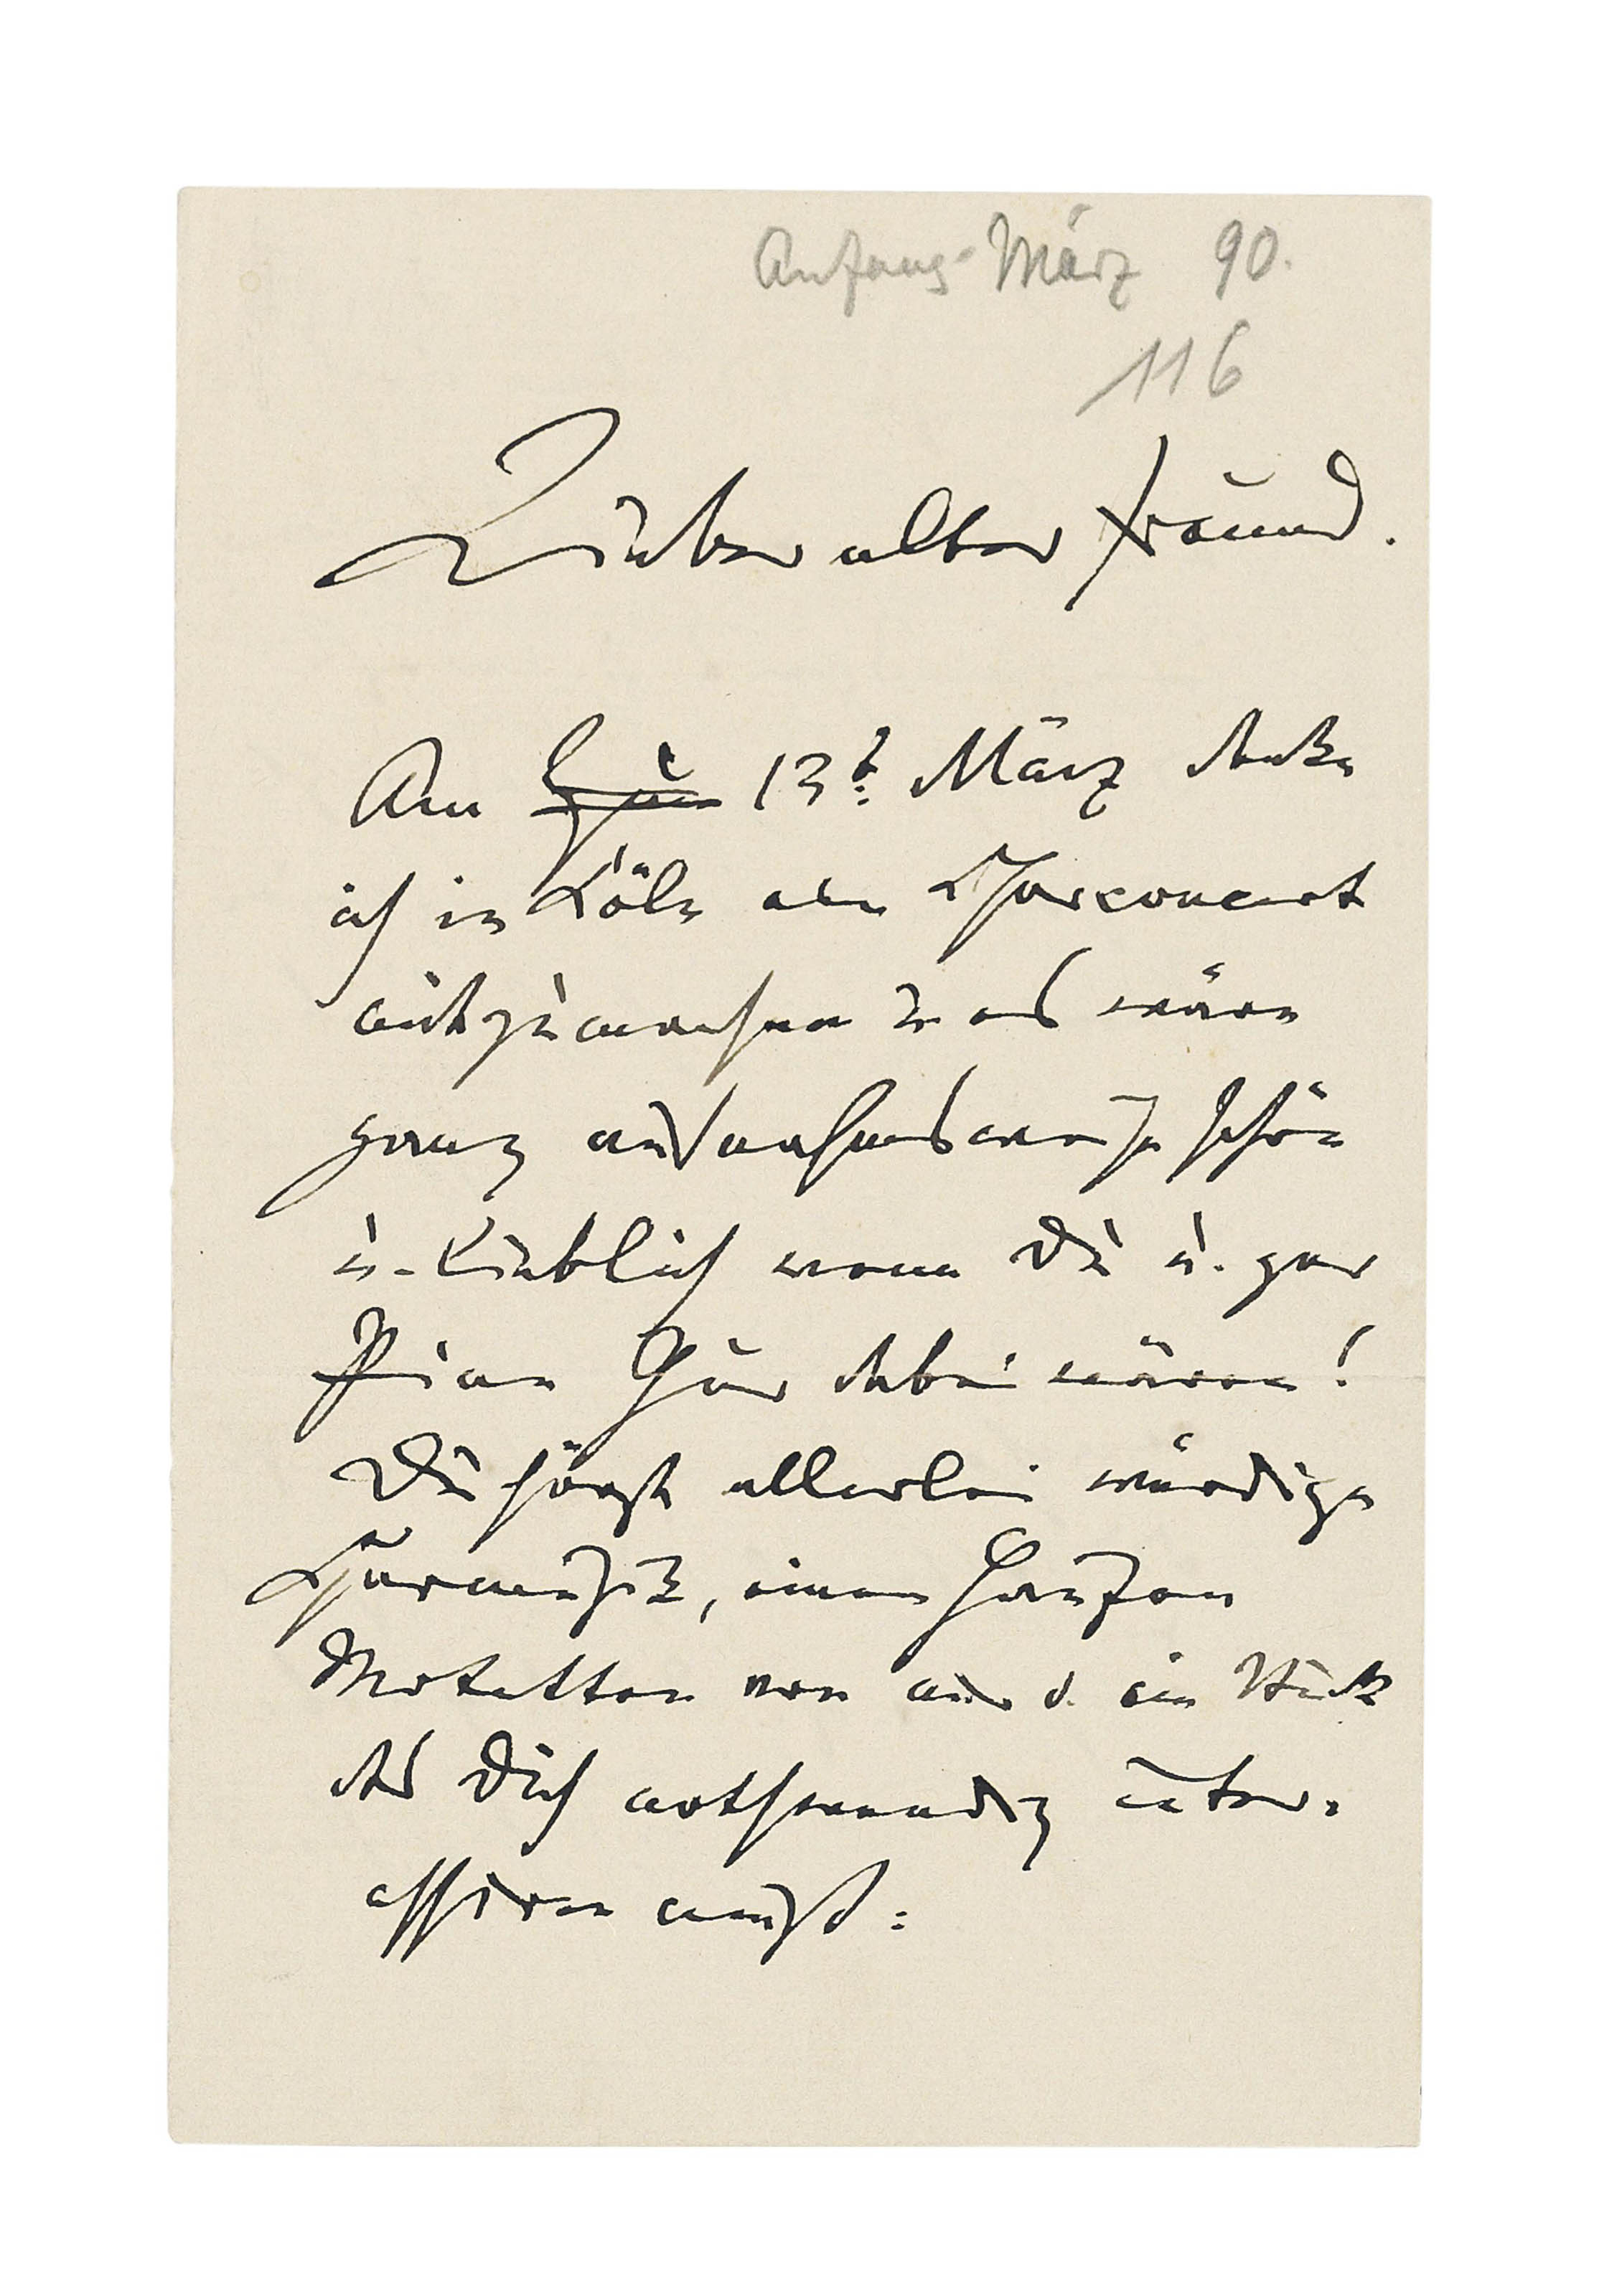 BRAHMS, Johannes (1833-1897). Autograph letter signed ('J. Brahms') to [his friend Julius Otto Grimm], n.p. [Vienna], n.d. [early March 1890], inviting him to a choral concert in Cologne on the 13th at which he will hear 'all sorts of estimable choral music, a heap of motets by me, and a piece that must necessarily interest you', for Brahms has brushed off a trio from their youth (the op.8, which he had just revised) and 'if not given it a wig, at least combed and tidied its hair'; the prospect of seeing Grimm again makes him 'as happy as a snow-king', 2½ pages, 8vo, bifolium (minor spotting). Provenance: collection of Dr Fritz and Dita Callomon, and thence by gift.